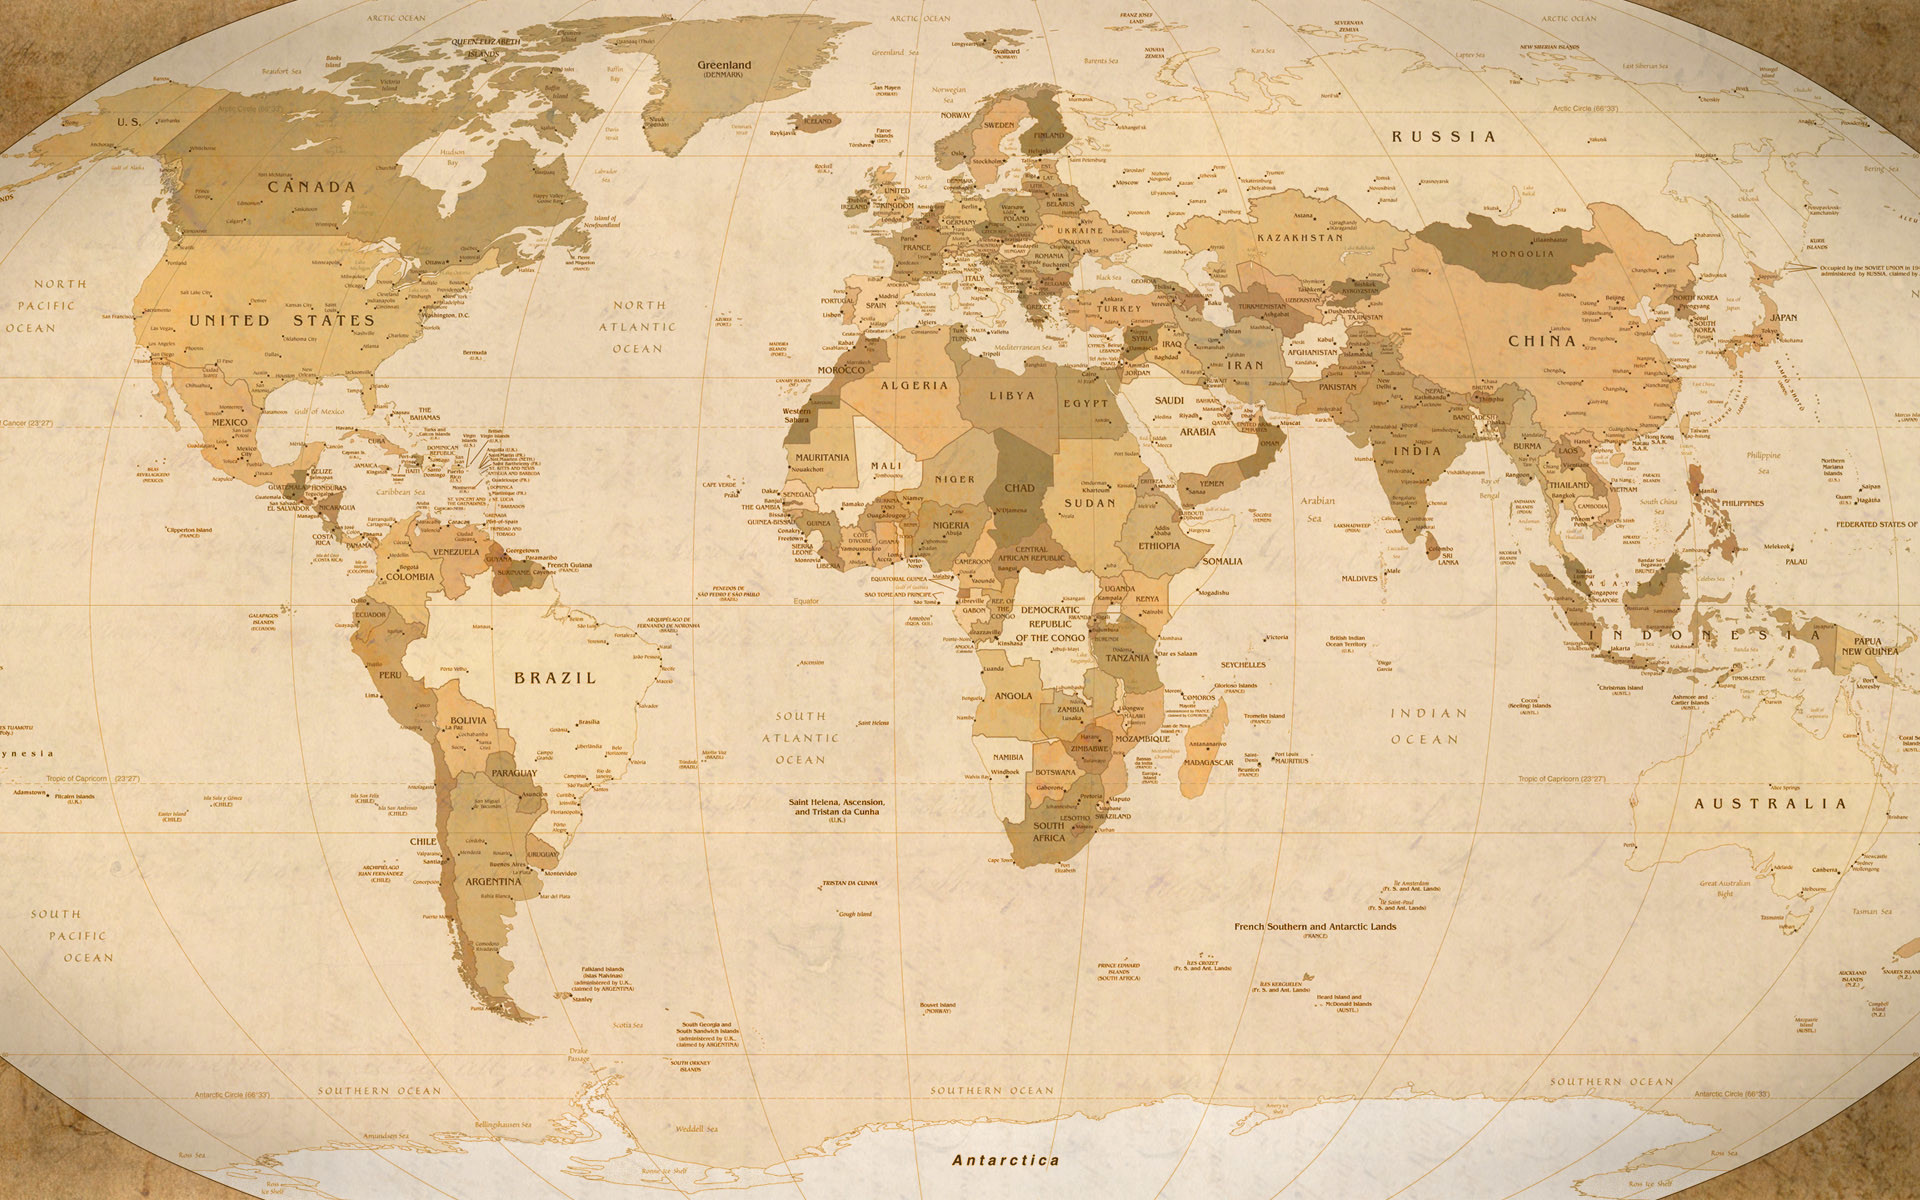 World map screensaver wallpaper 56 images 1920x1200 world map desktop wallpaper 4690 1920x1200 umad com gumiabroncs Images